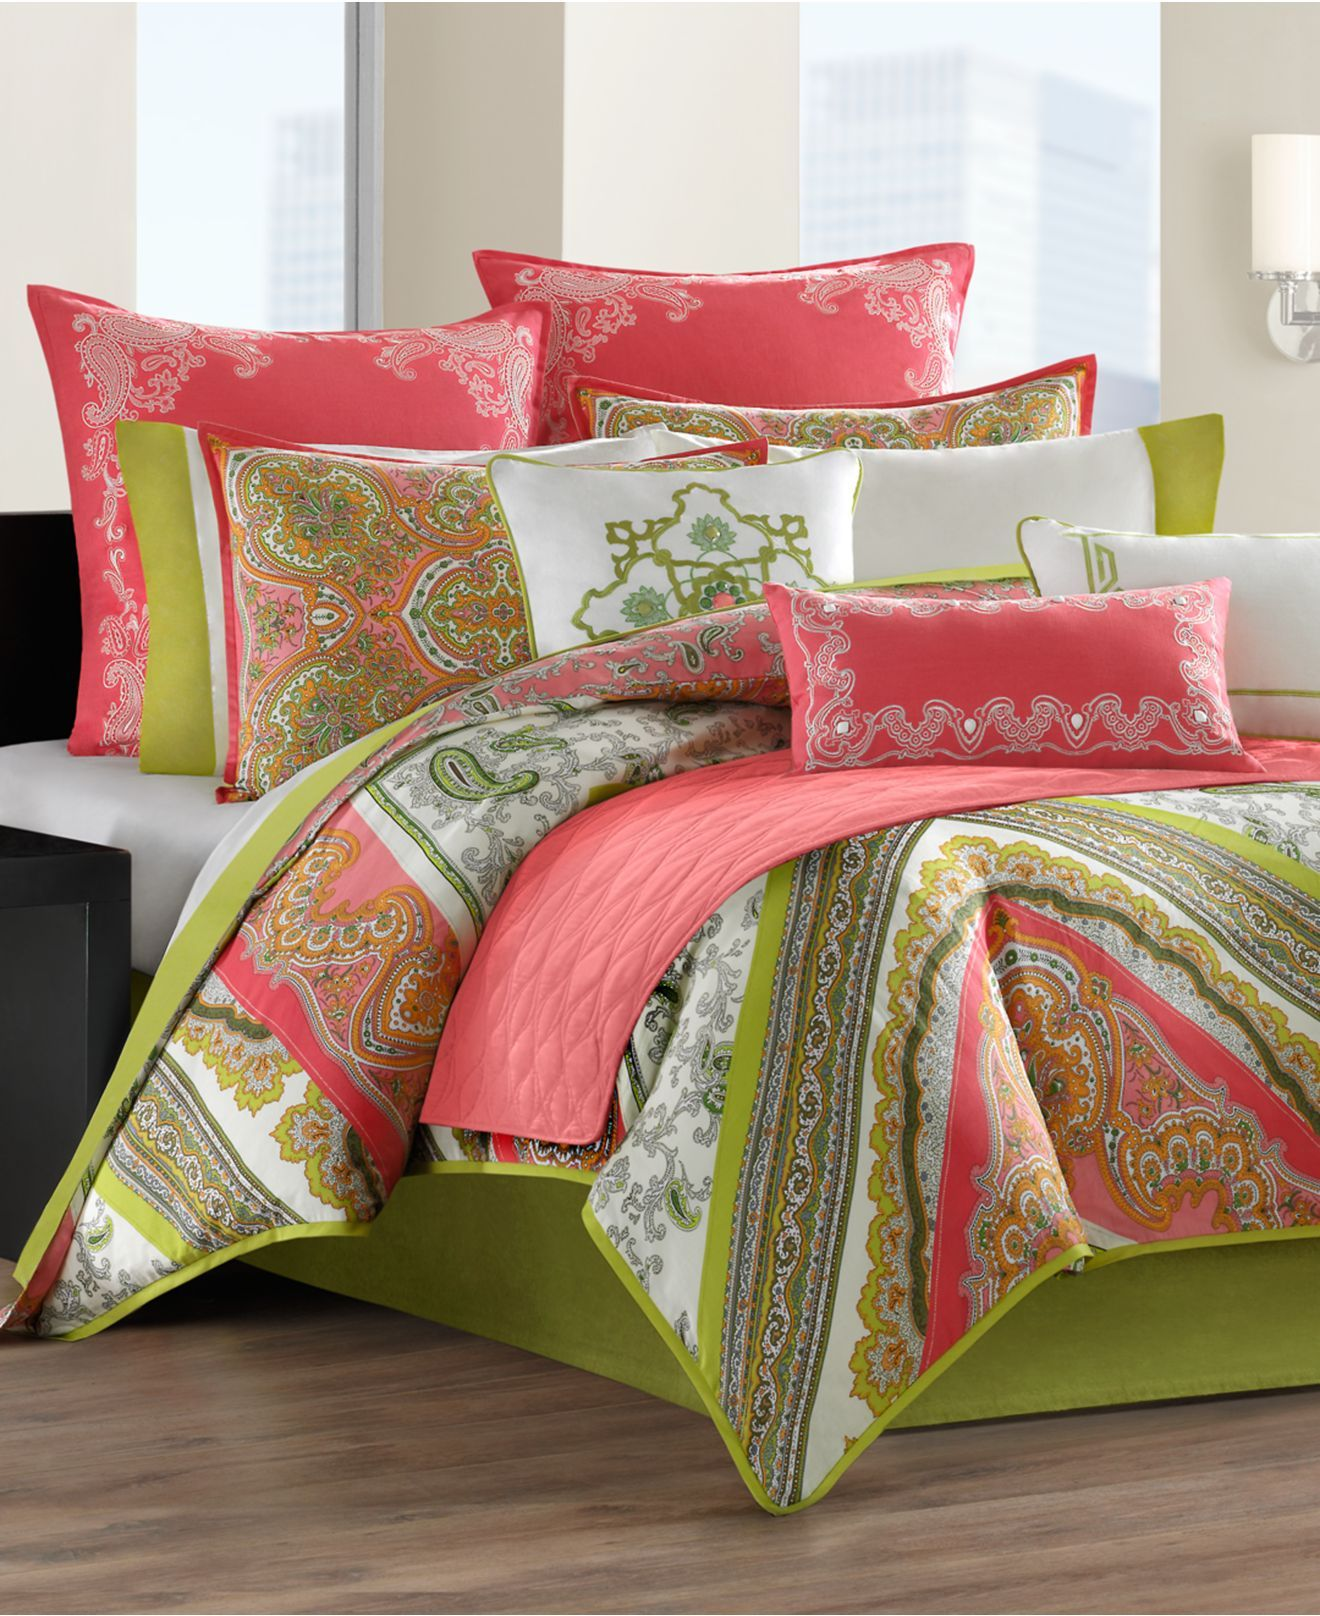 Echo Bedding Gramercy Paisley forter Sets Bedding Collections